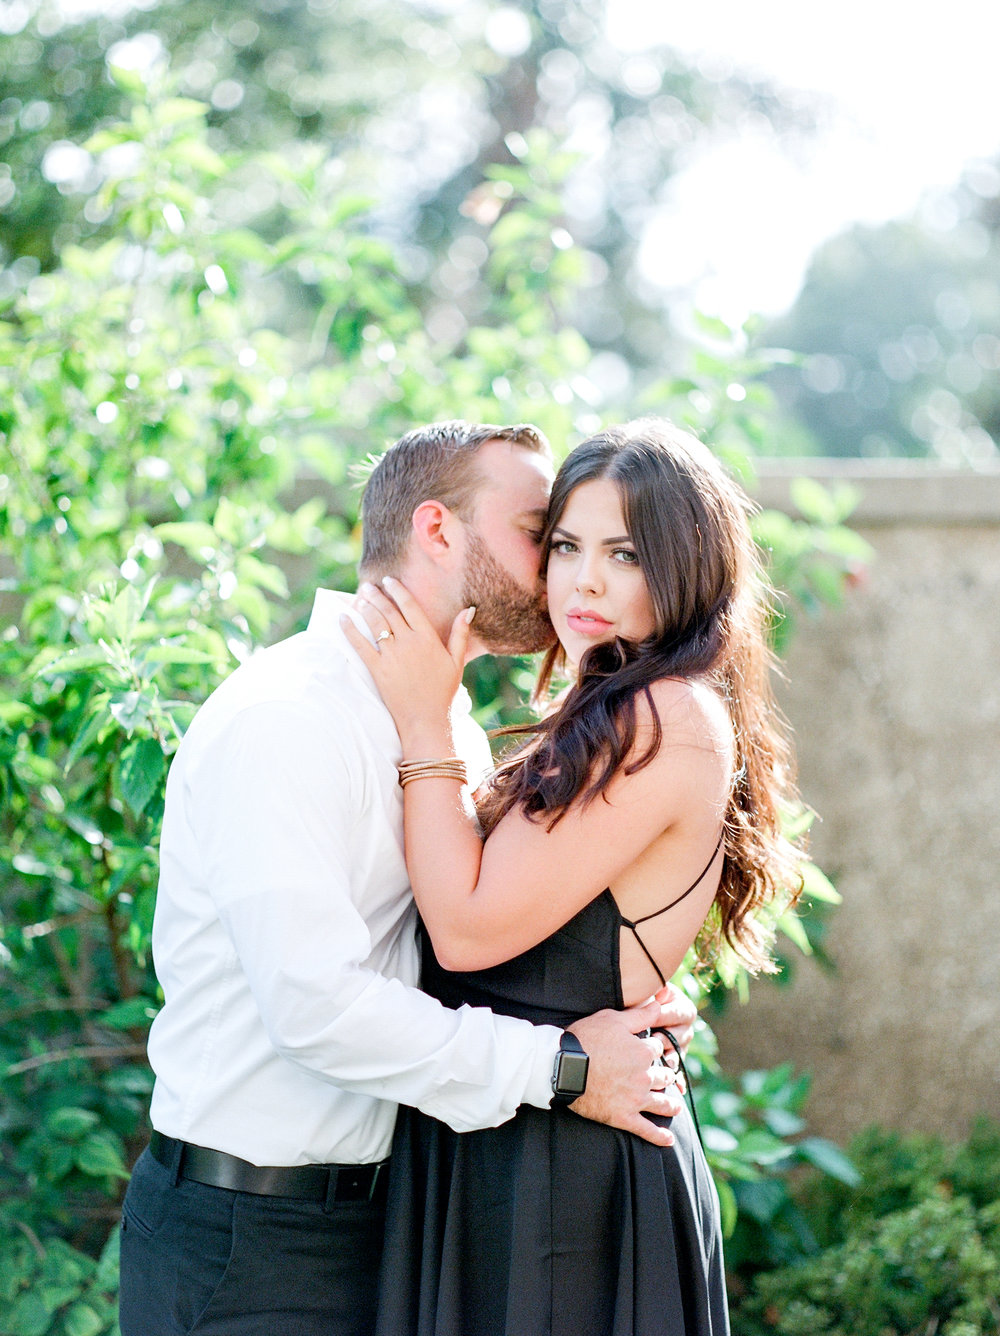 Lisa Silva Photography- Jacksonville, Florida Fine Art Film Wedding Photography (4 of 108).jpg